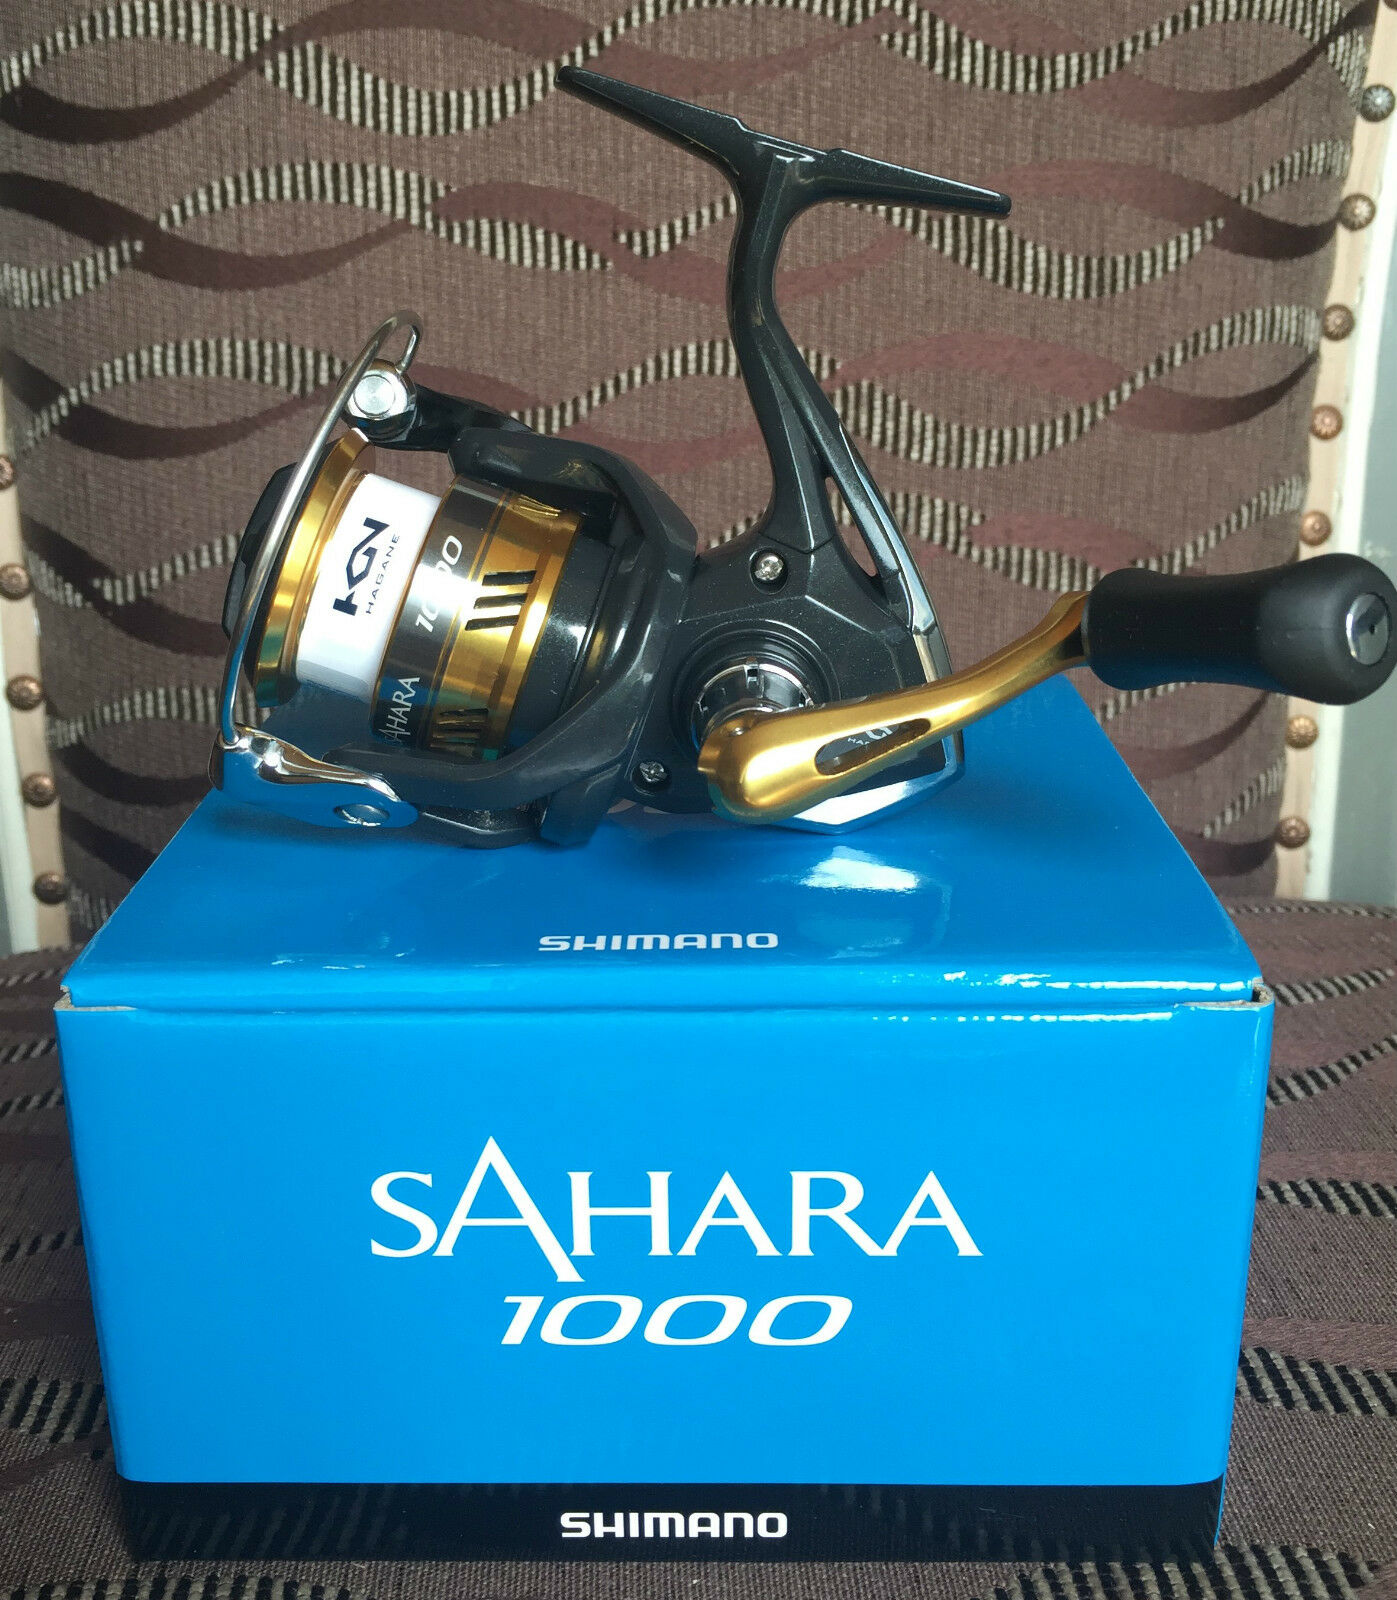 Shimano  Sahara 1000 FI Spinnrolle  selling well all over the world